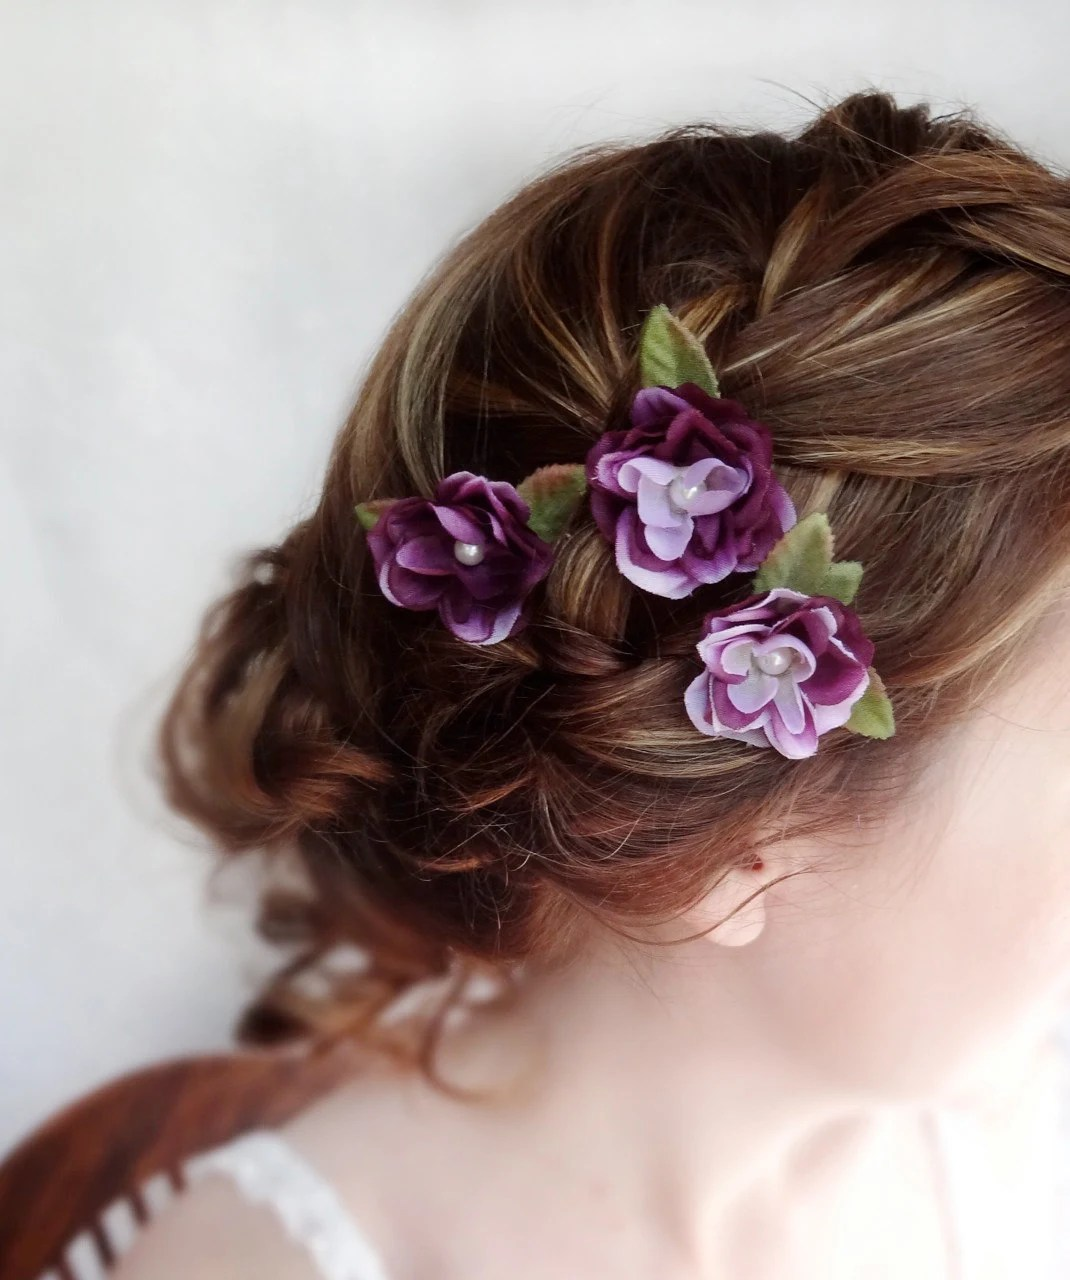 Items Similar To Eggplant Flower Hair Accessory Purple